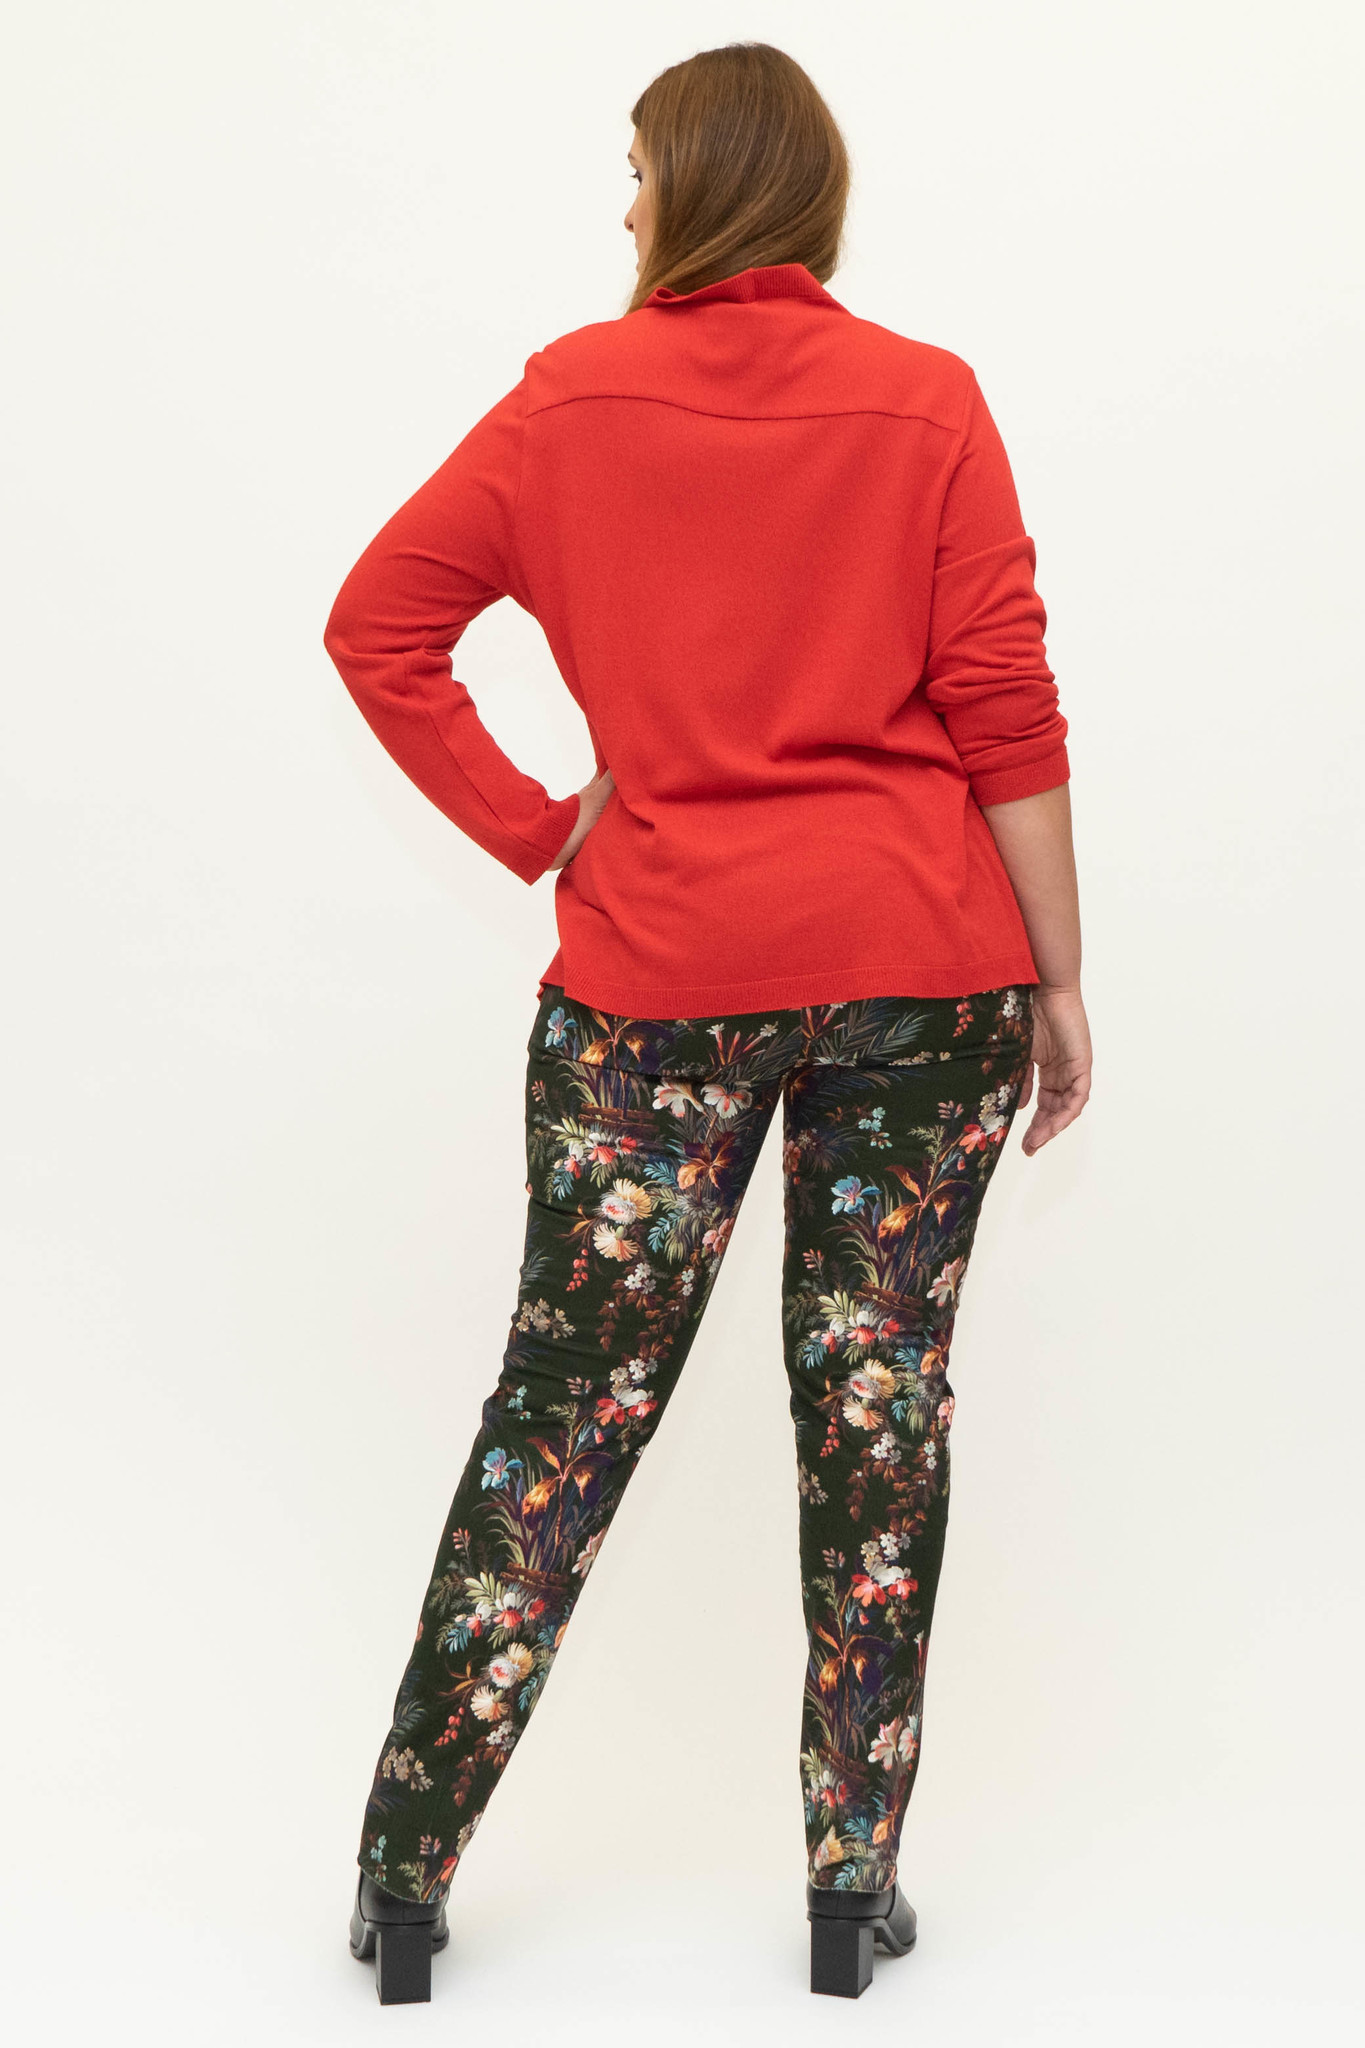 DAVINIA Trousers in printed Cotton stretch-3